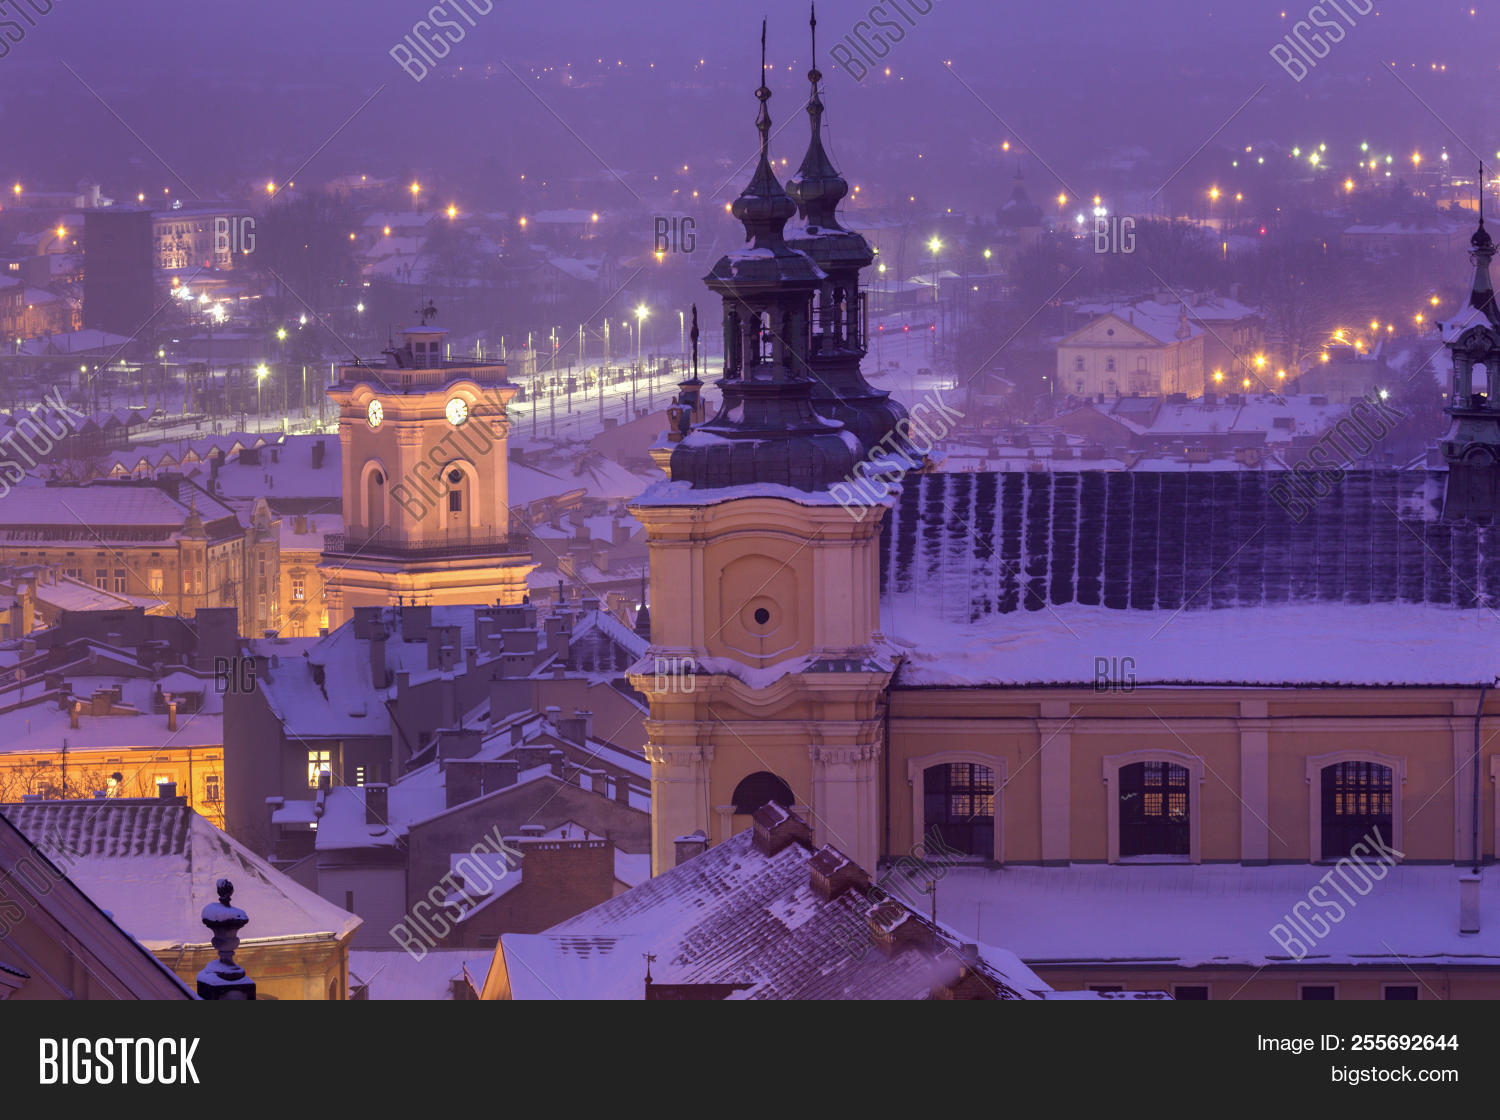 Baptist,Europe,John,Life,Magdalena,Mary,Podkarpackie,Poland,Pomorskie,Pomorze,Przemysl,St.,aerial,architecture,belfry,blue,cathedral,church,city,cityscape,cold,downtown,dusk,evening,house,ice,illuminated,landmark,landscape,night,of,old,outdoors,panorama,sky,skyline,snow,square,street,sunrise,sunset,the,town,travel,twilight,winter